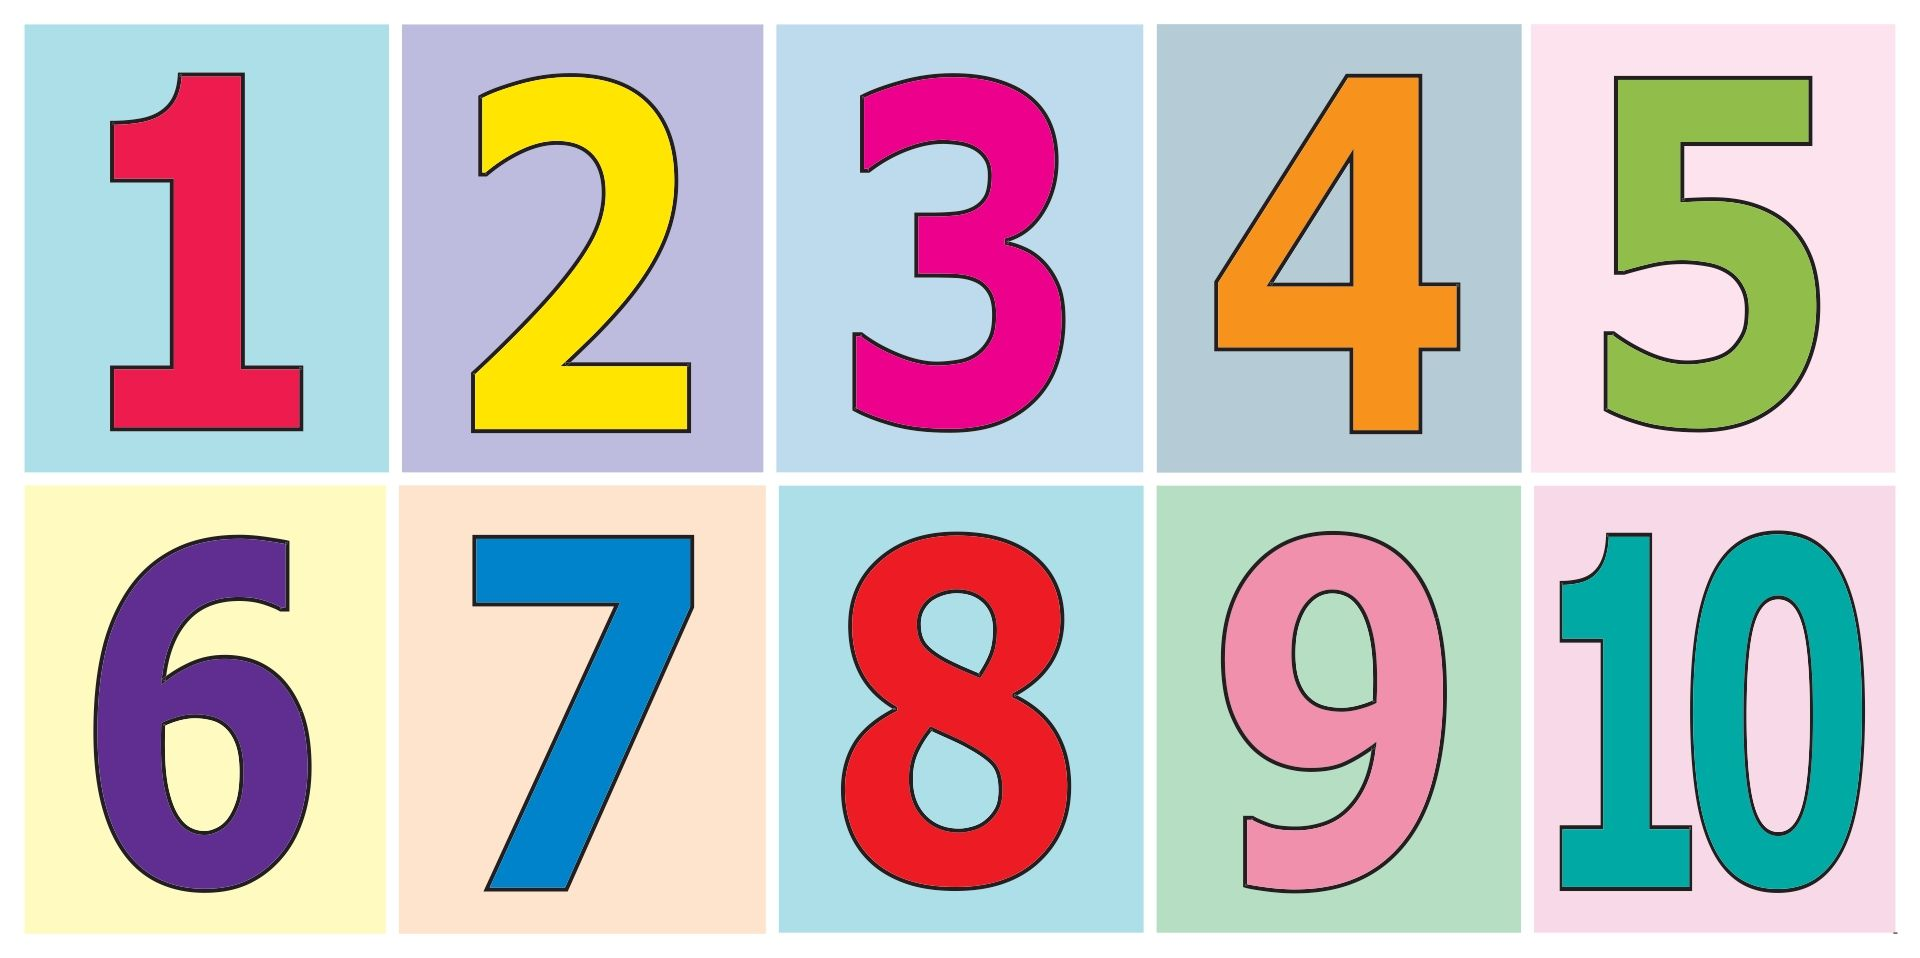 Pin By Chamara On Ten4 In 2021 How To Memorize Things Printable Numbers Printable Image